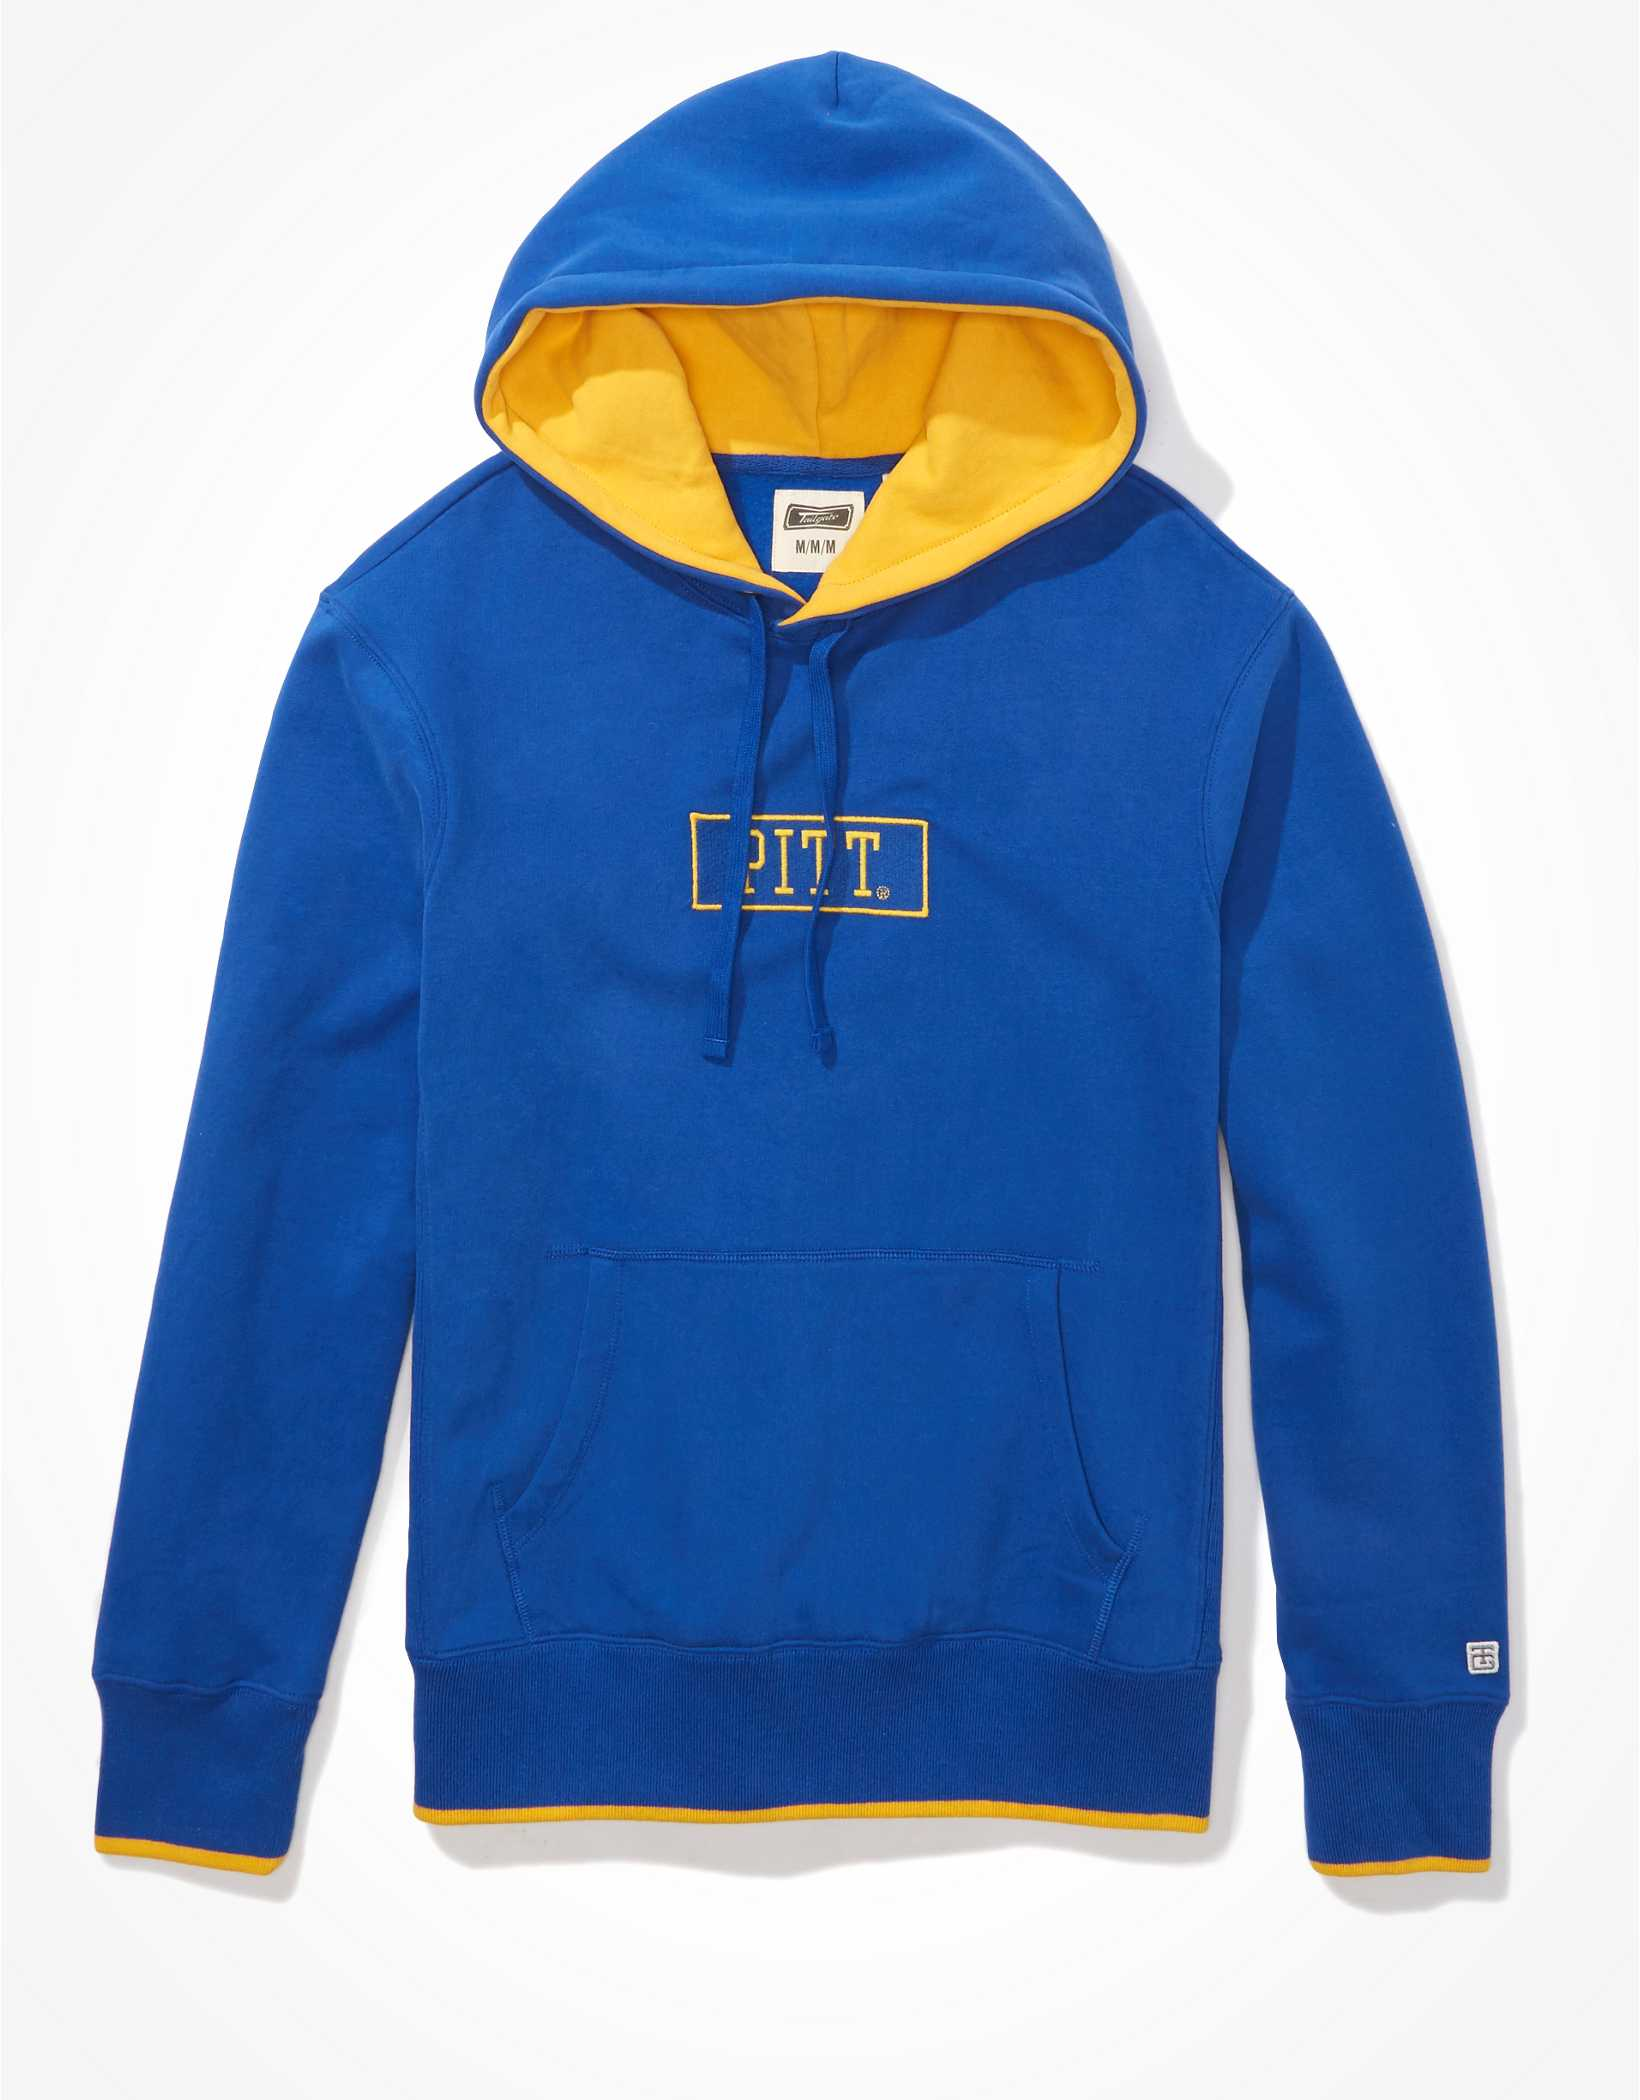 Tailgate Men's Pitt Panthers Tipped Hoodie